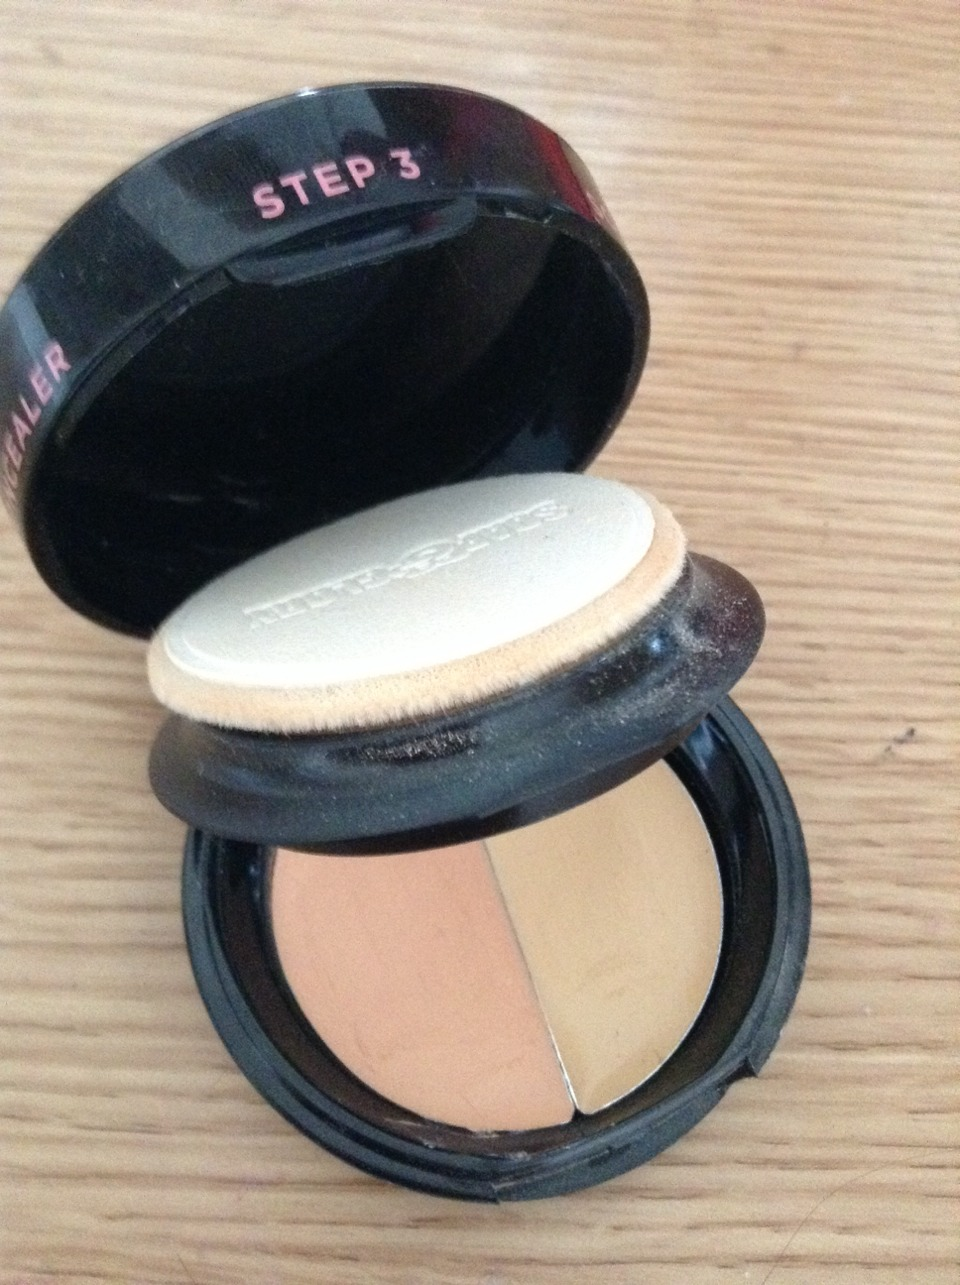 Soap and glory kick ass concealer not super cheap but brilliant